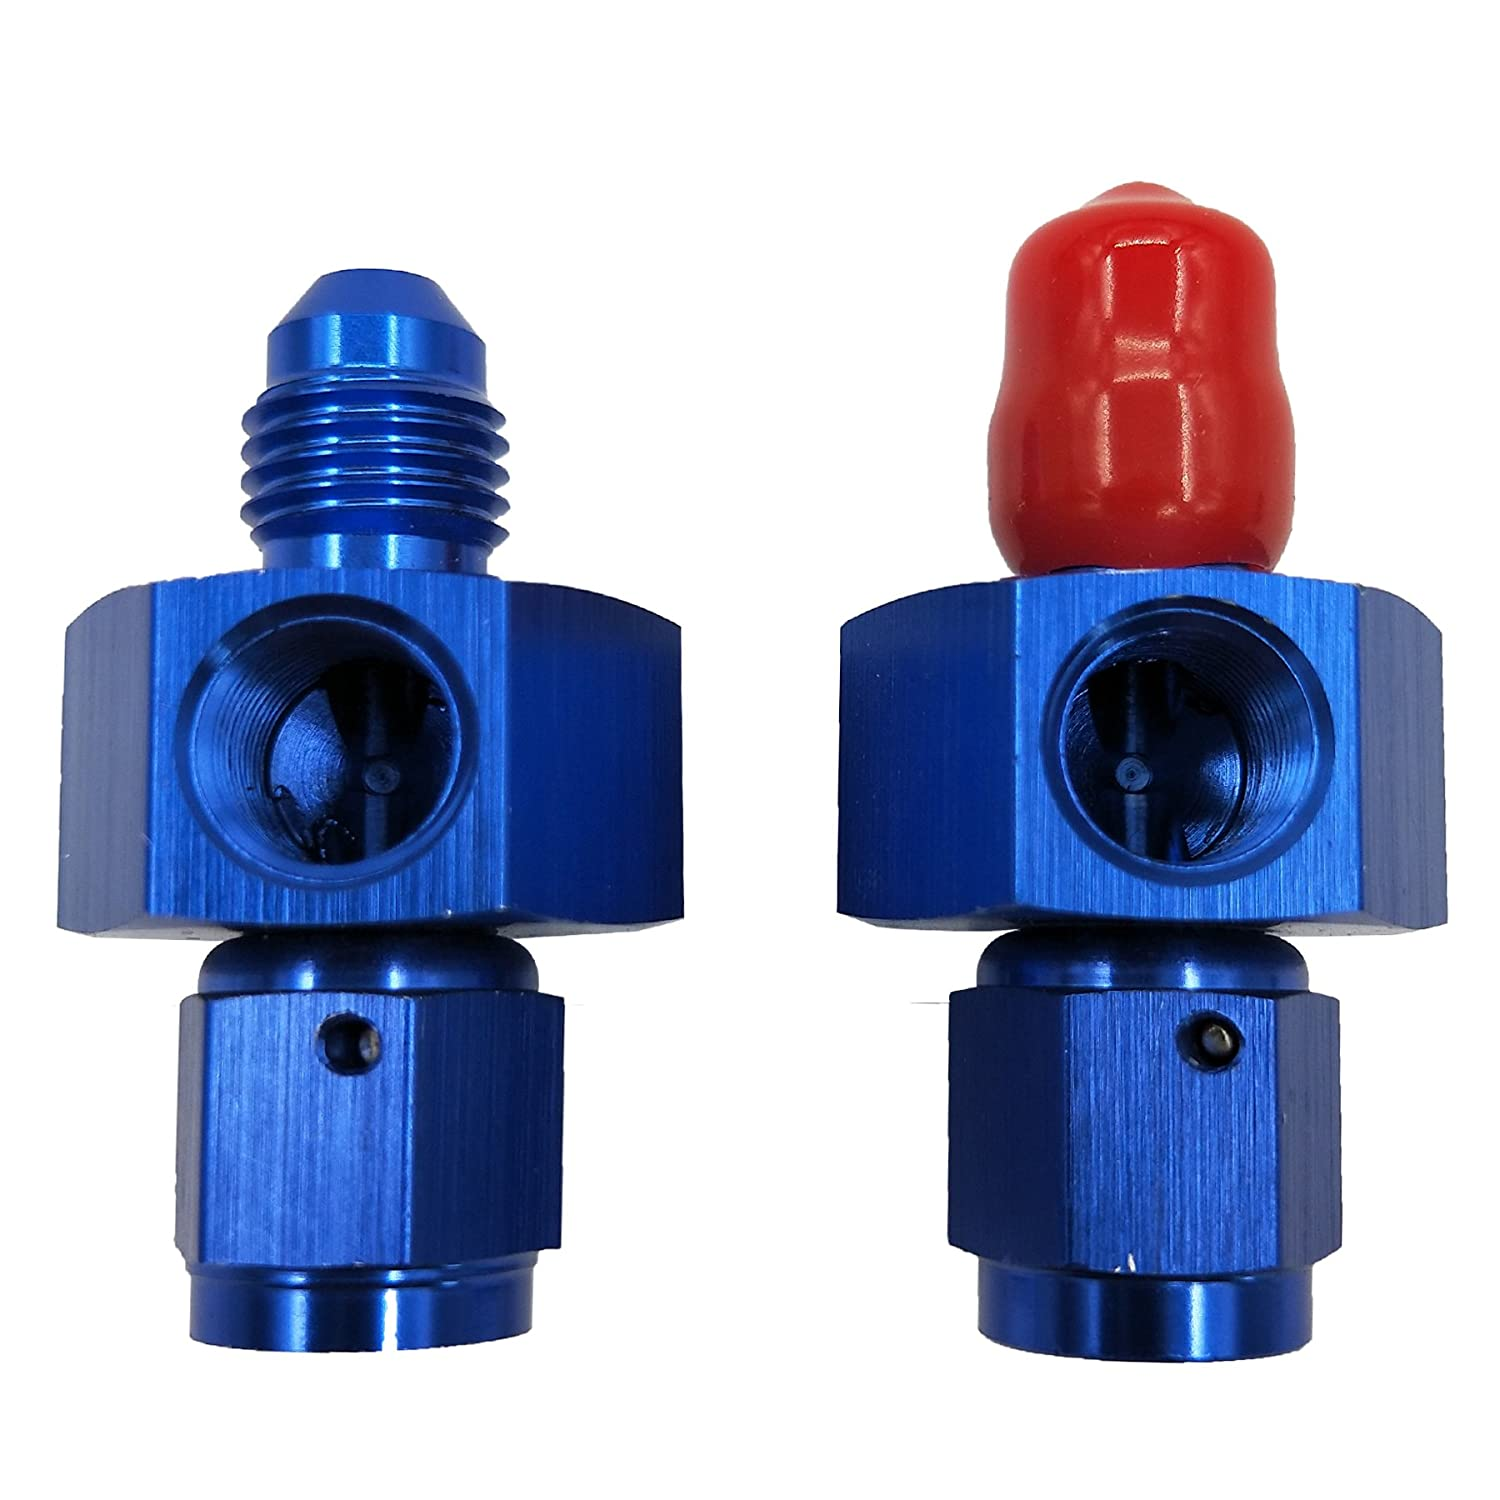 4AN 4 AN Male To Dracary Nitrous Adapter With Two 1//8 NPT Ports For Gauge Paurge 4 AN Female Blue